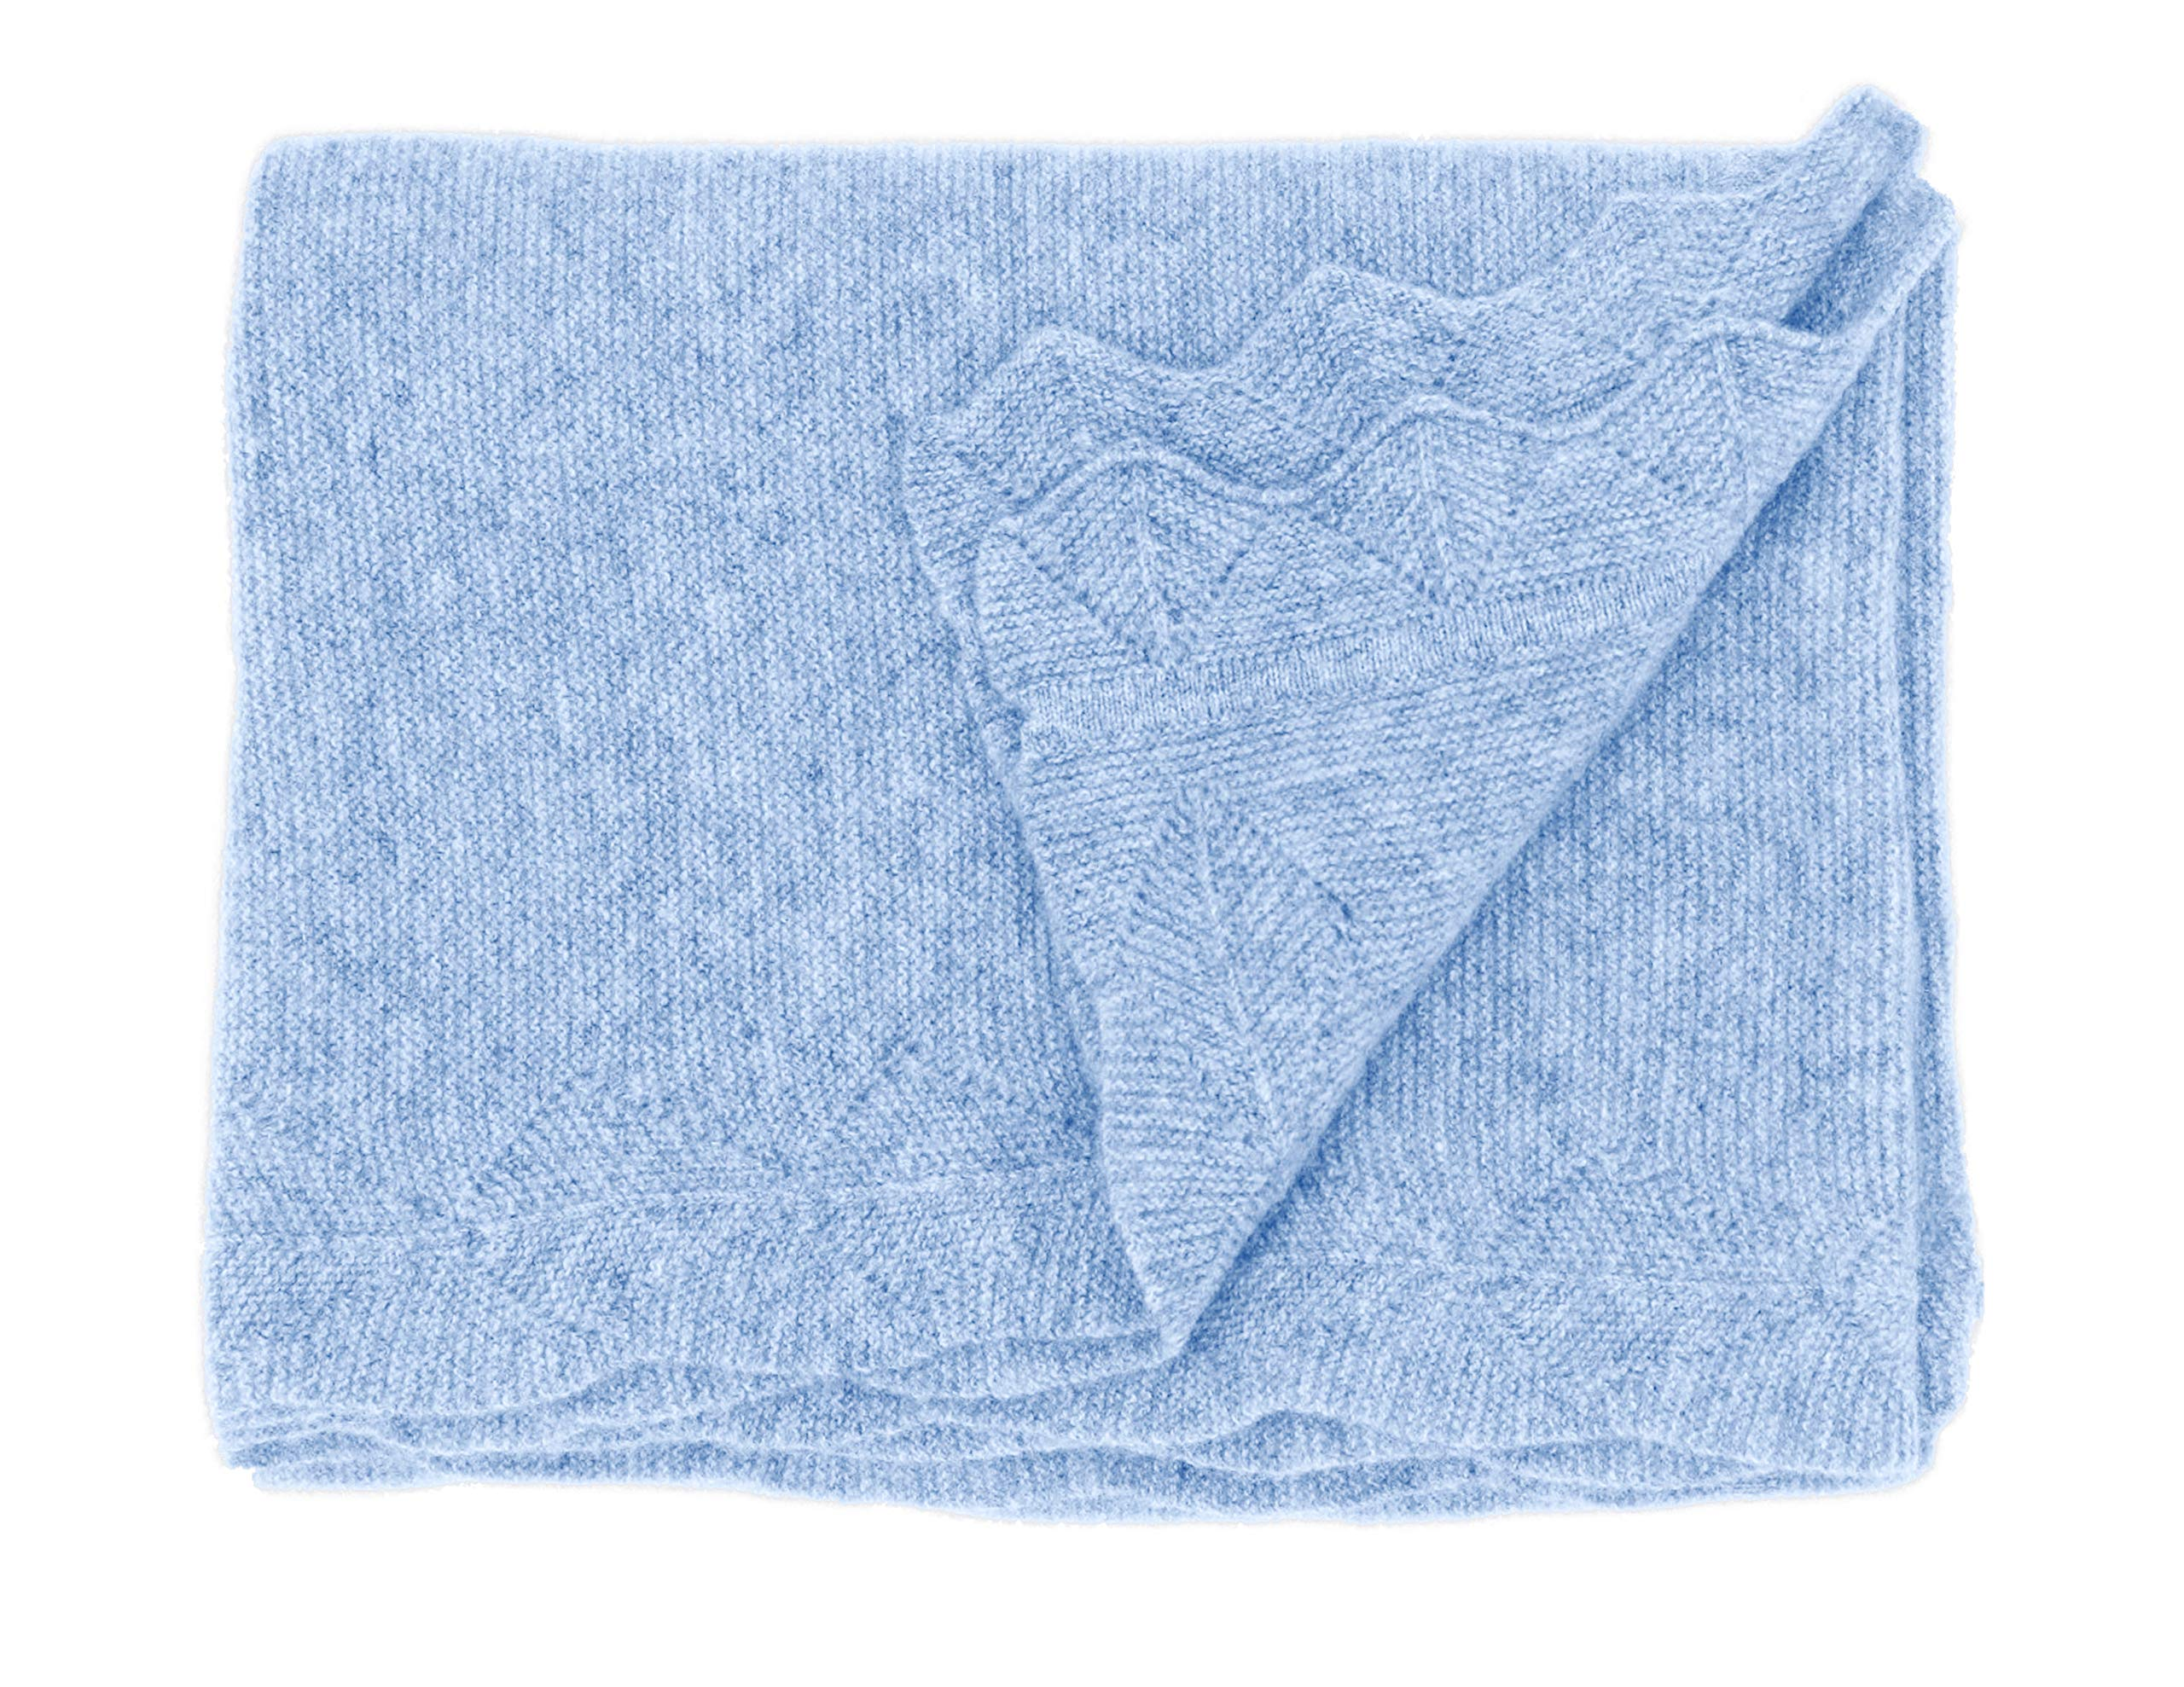 State Cashmere Luxe Stroller Baby Blanket 100% Pure Cashmere Travel Wrap • 40 x 30 inches by State Cashmere